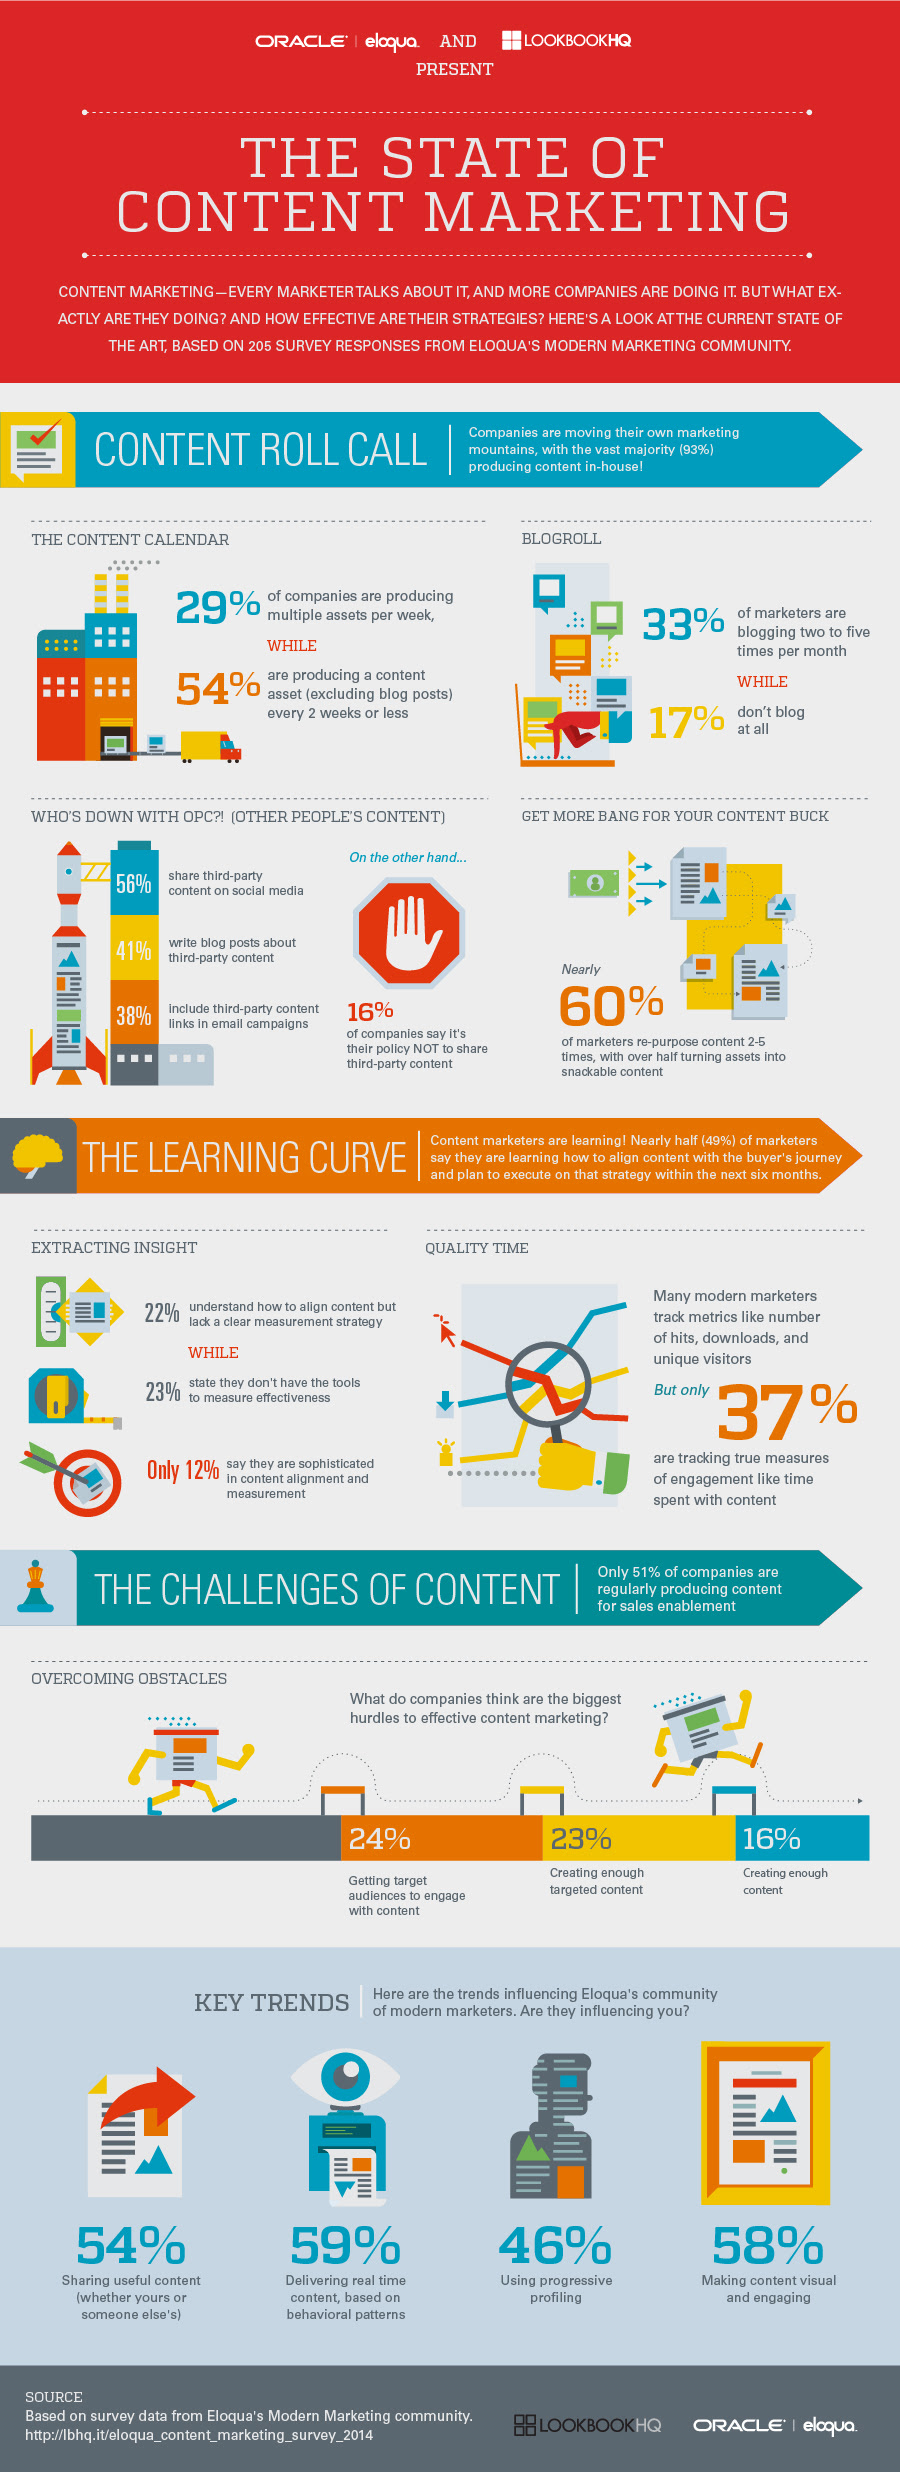 Infographic: The State of Content Marketing 2014